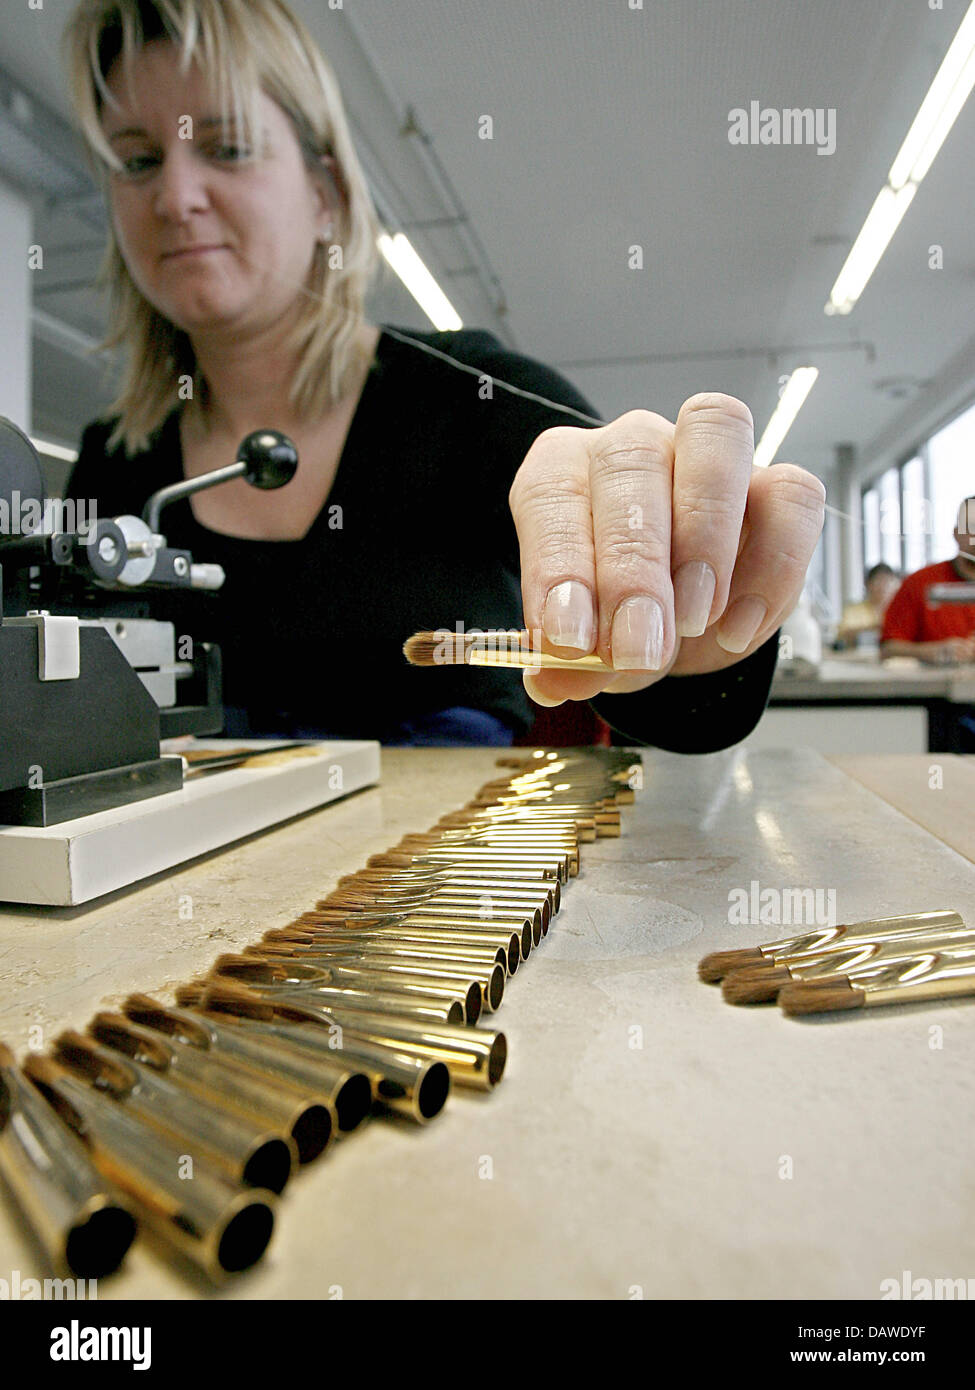 An employee puts brush parts together at the artist's brush factory Defet Gmbh in Nuremberg, Germany, 27 February Stock Photo